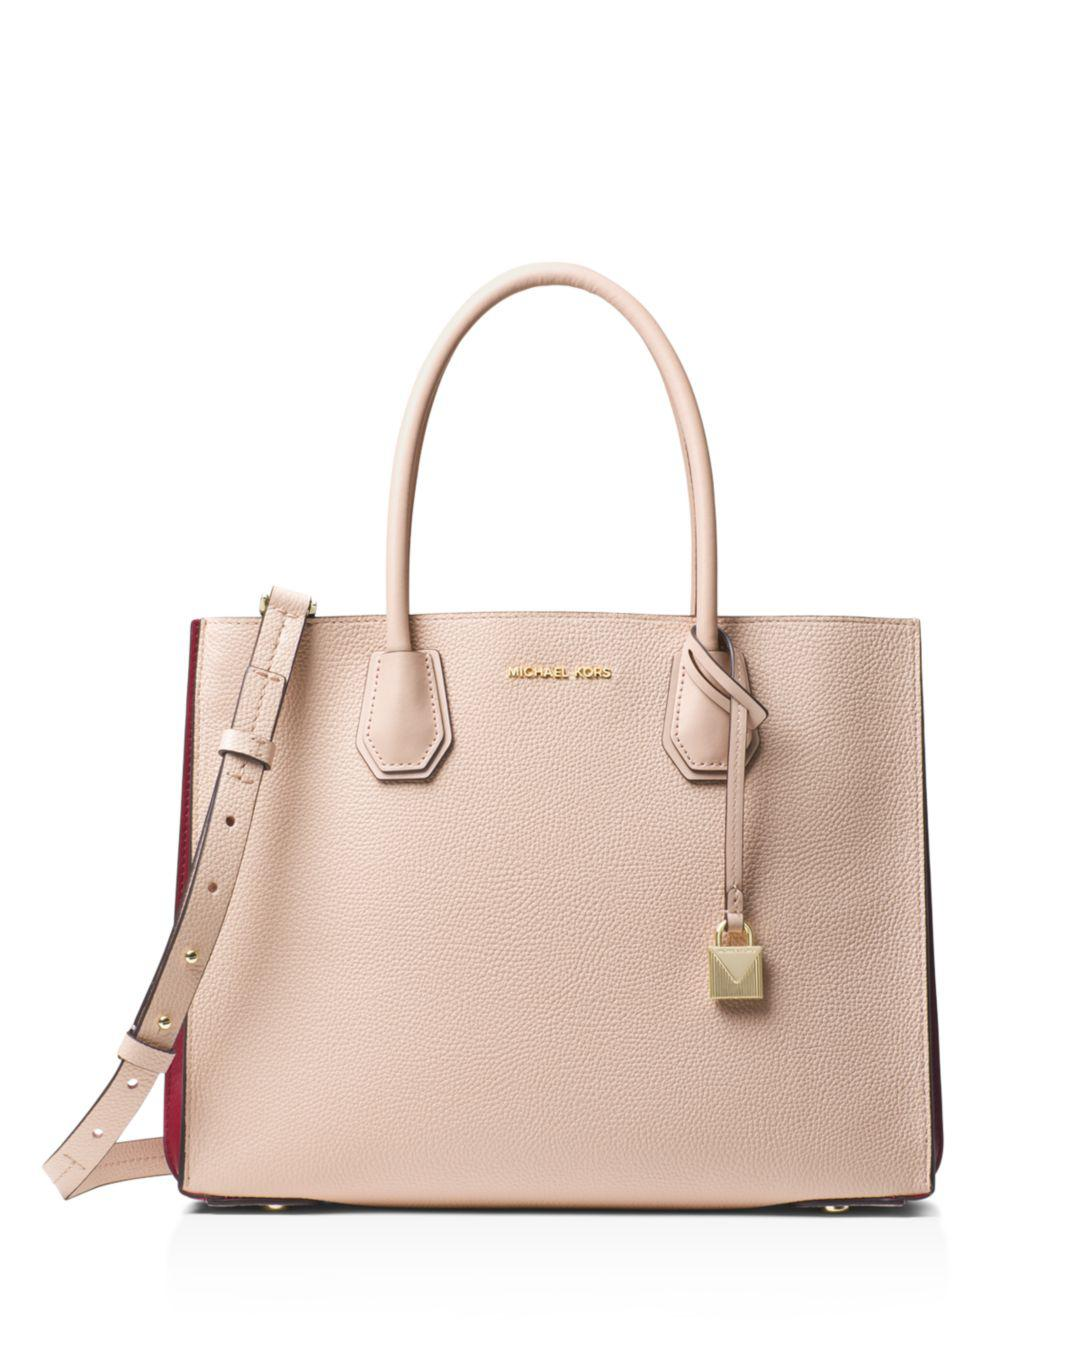 19481f860f54 MICHAEL Michael Kors Mercer Large Leather Convertible Tote in Pink ...